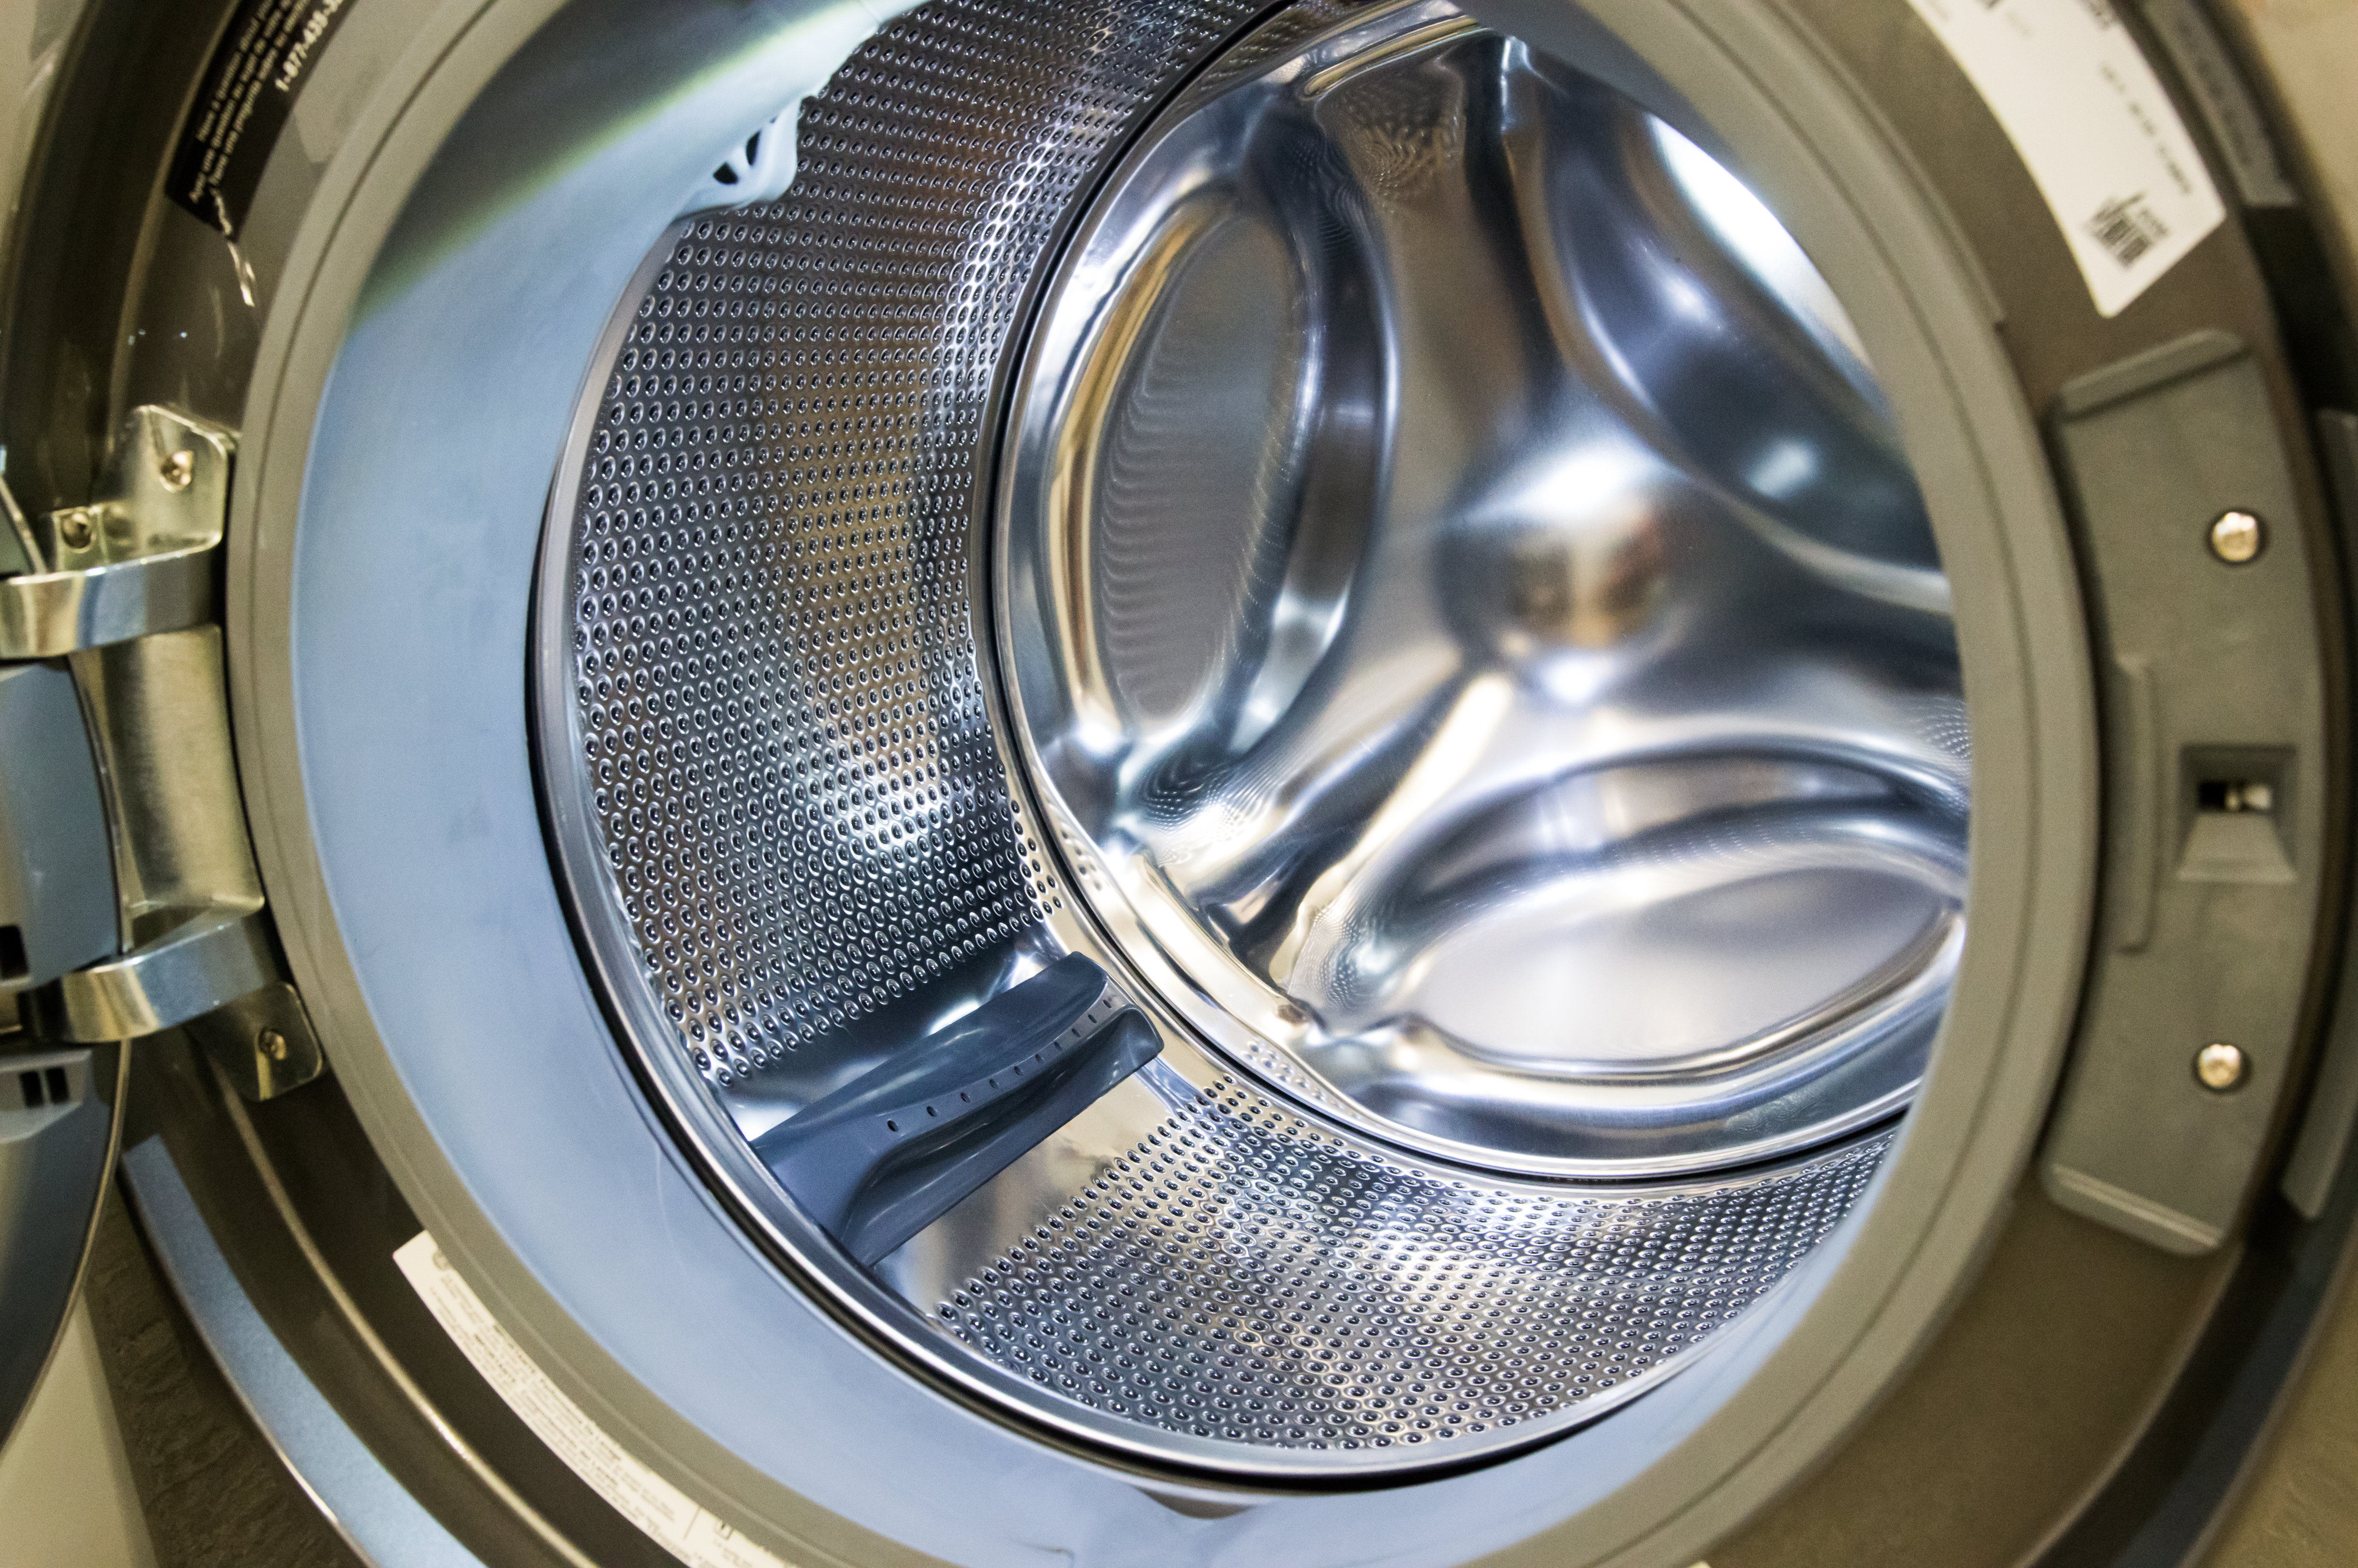 The beautiful stainless drum illuminated by interior lights.